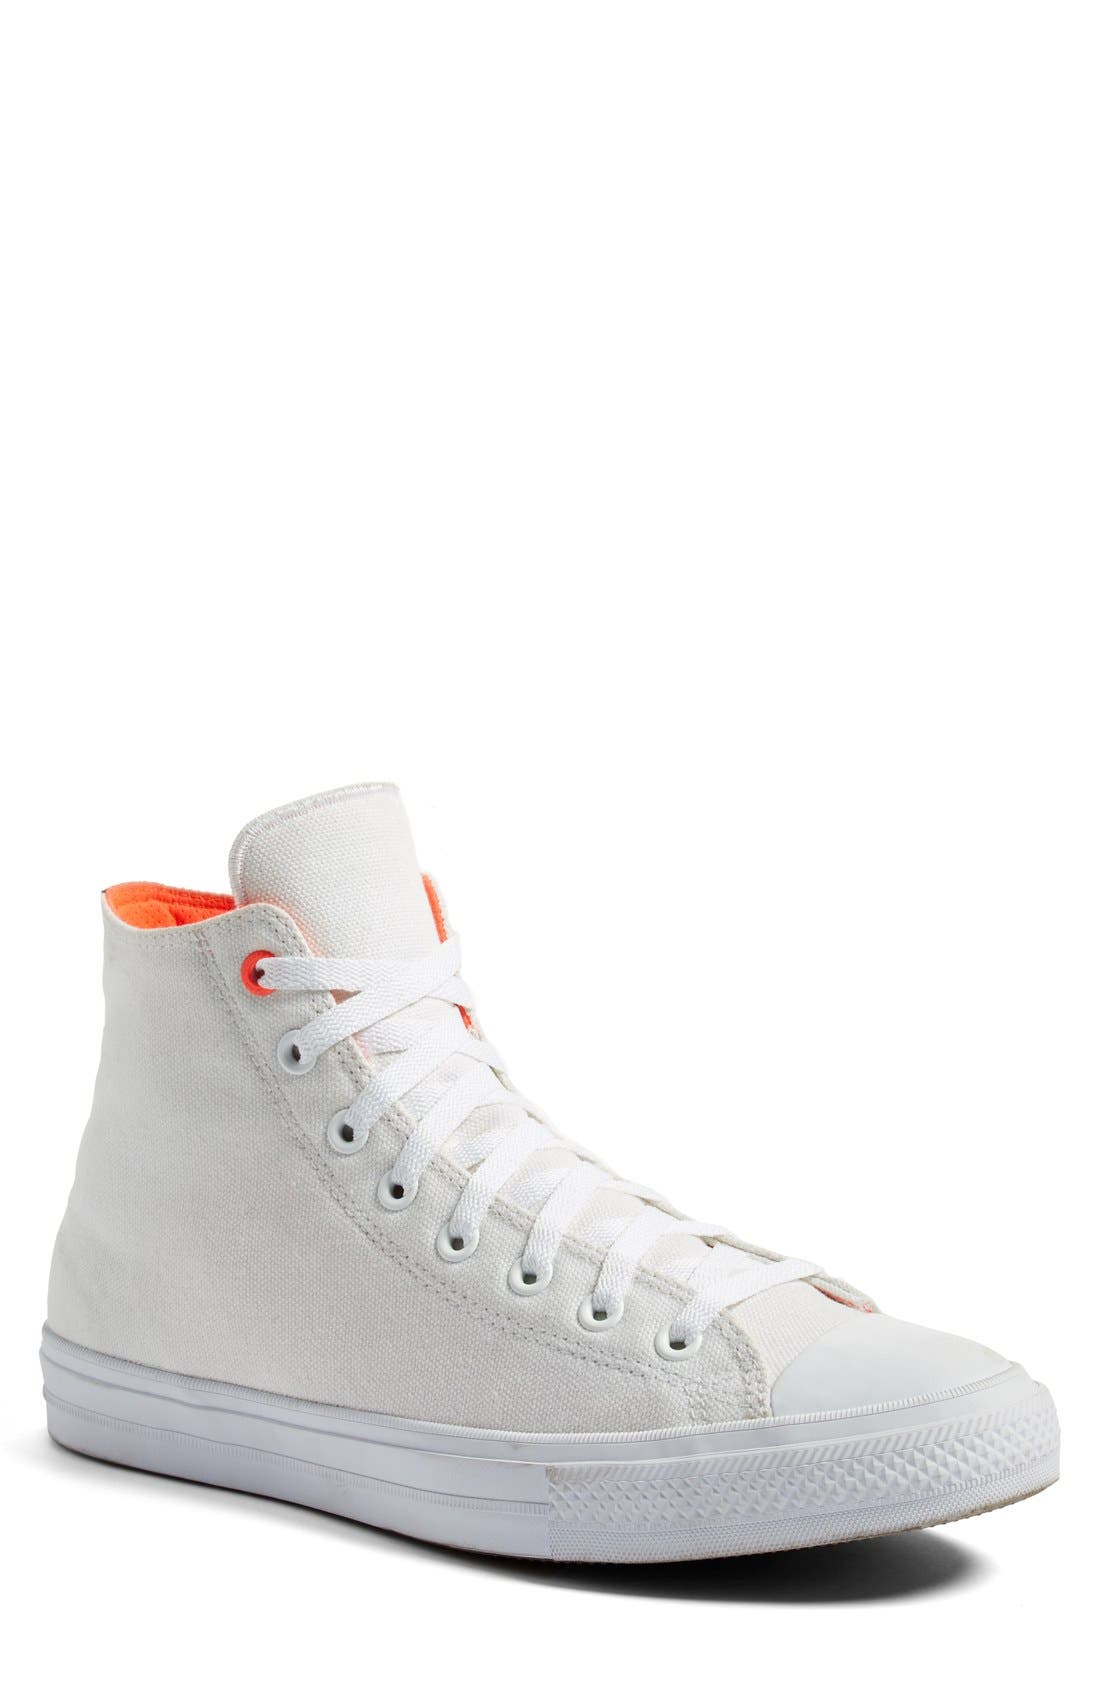 Main Image - Converse Chuck Taylor® All Star® II 'Shield' Water Repellent High Top Sneaker (Men)